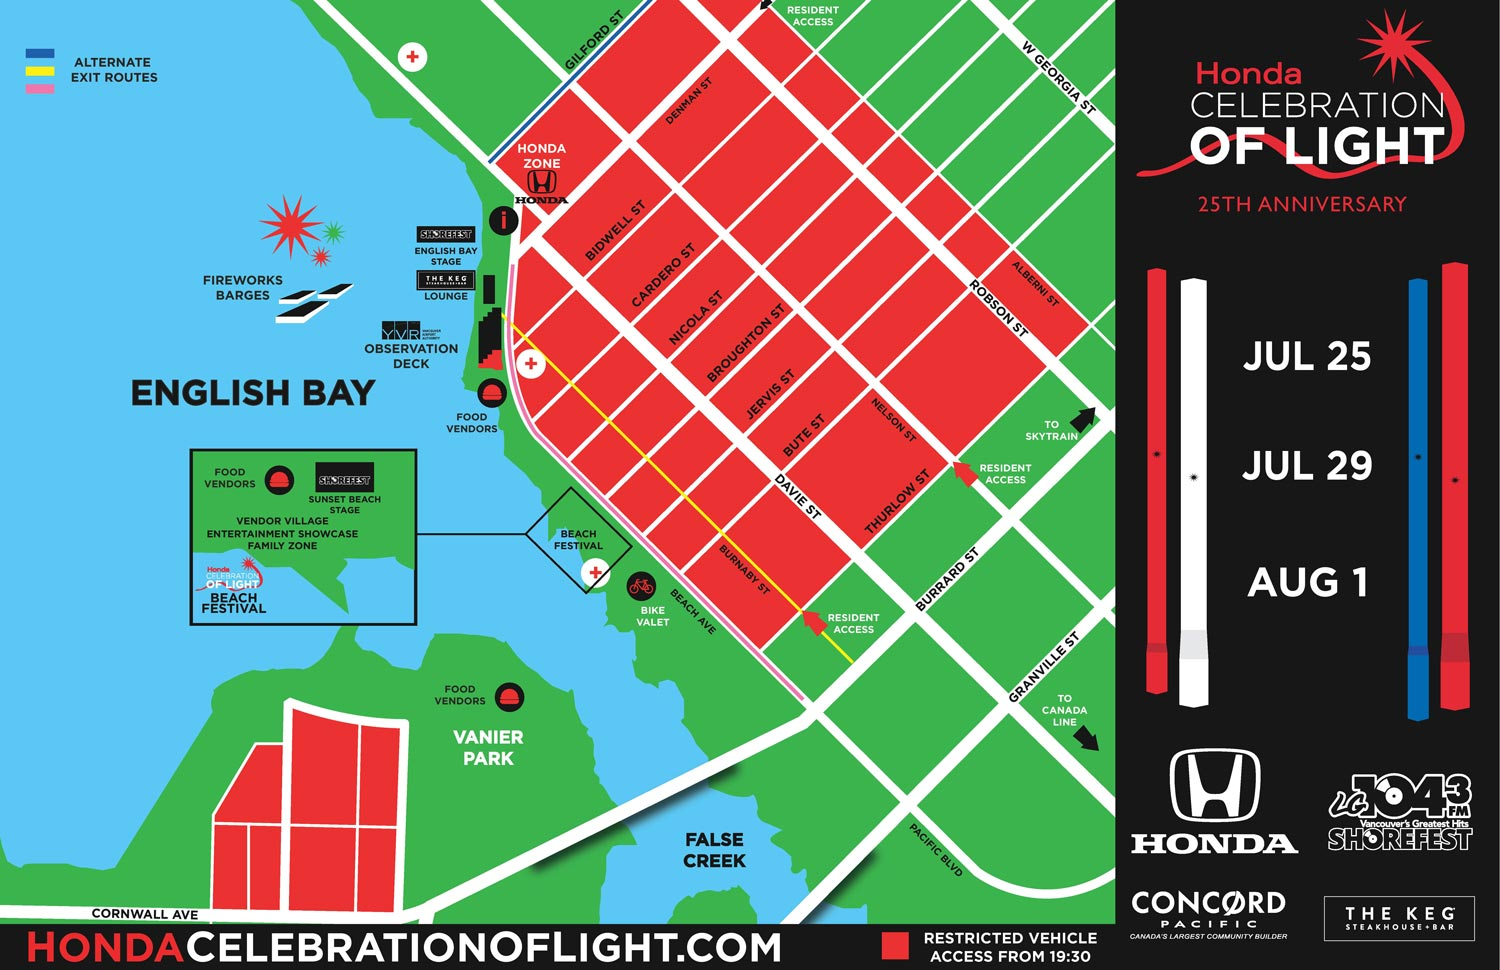 Honda Celebration of Light 2015